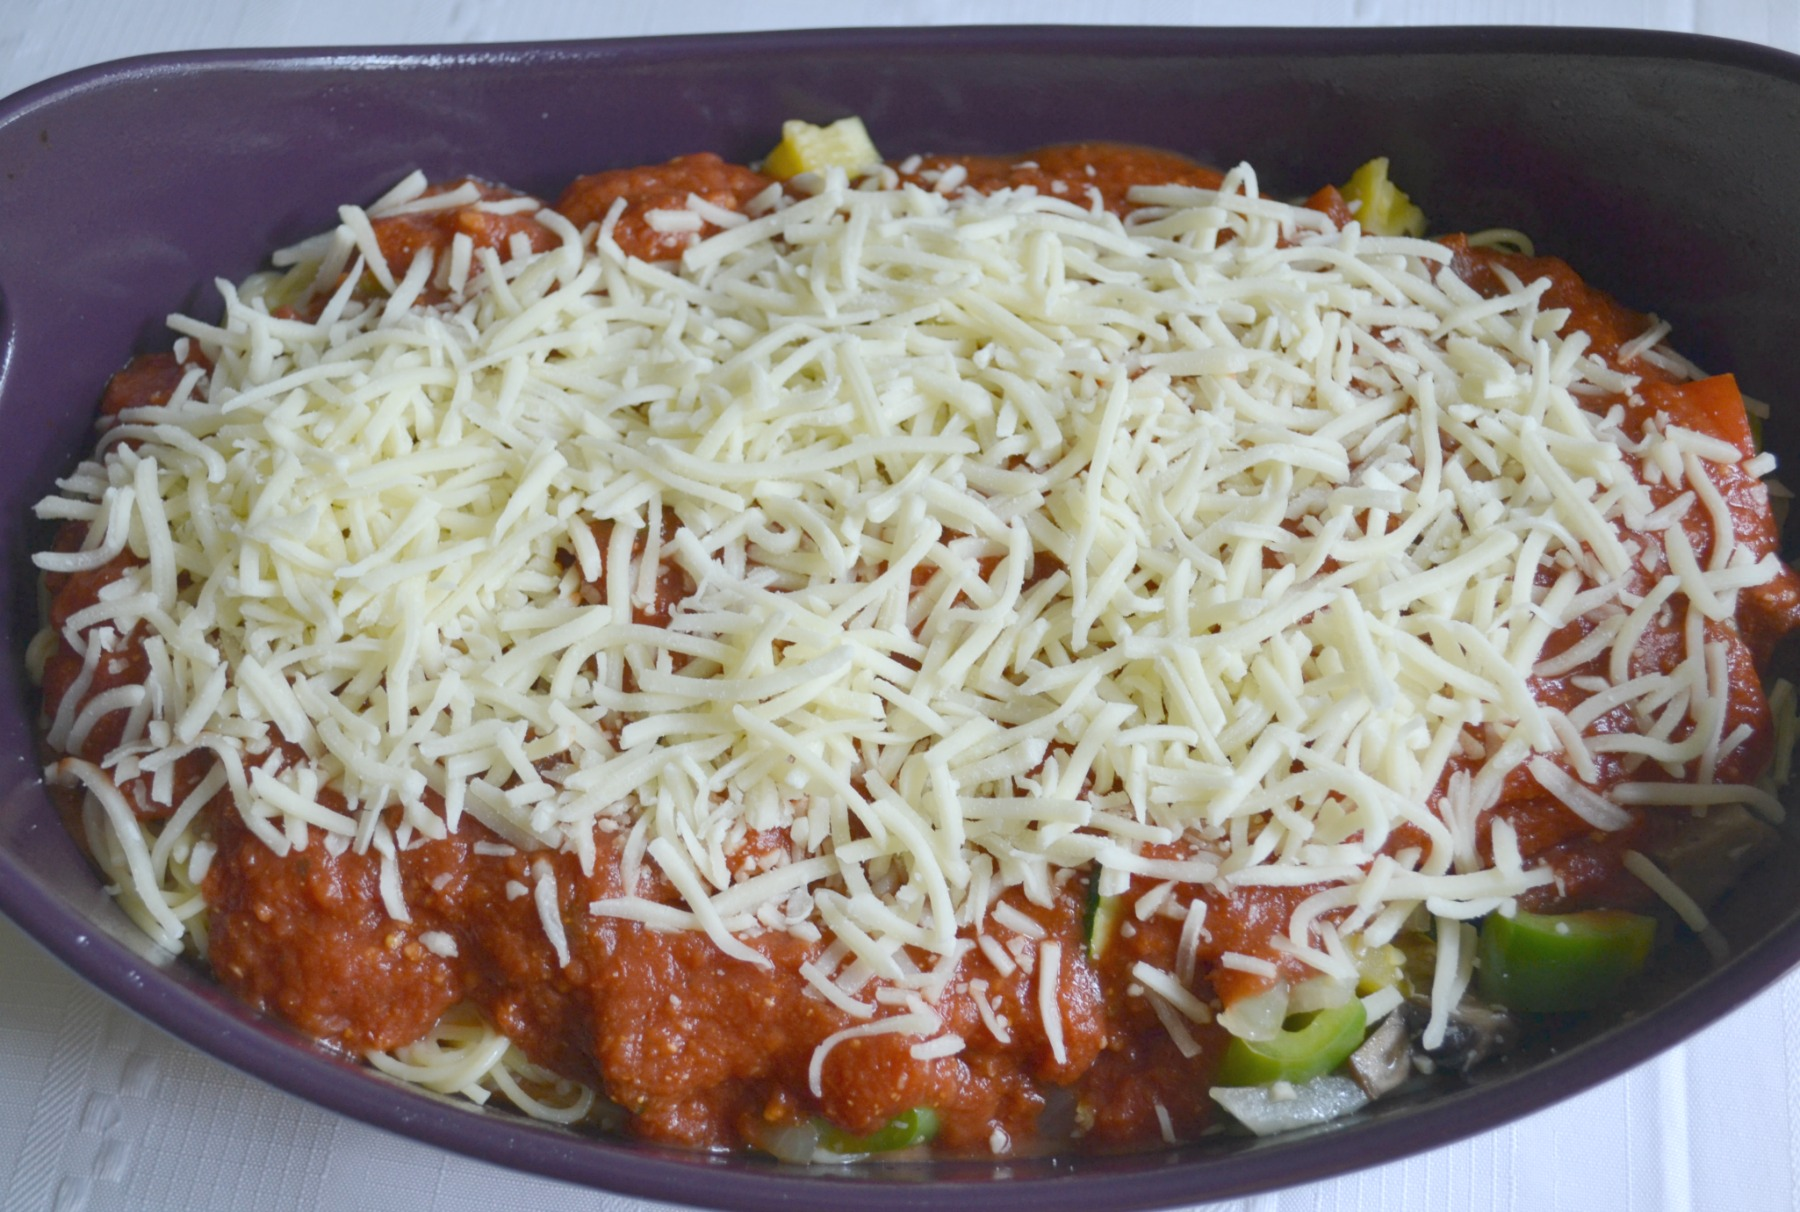 spaghetti bake, garden patch, vegetables, pasta, cheese, casserole